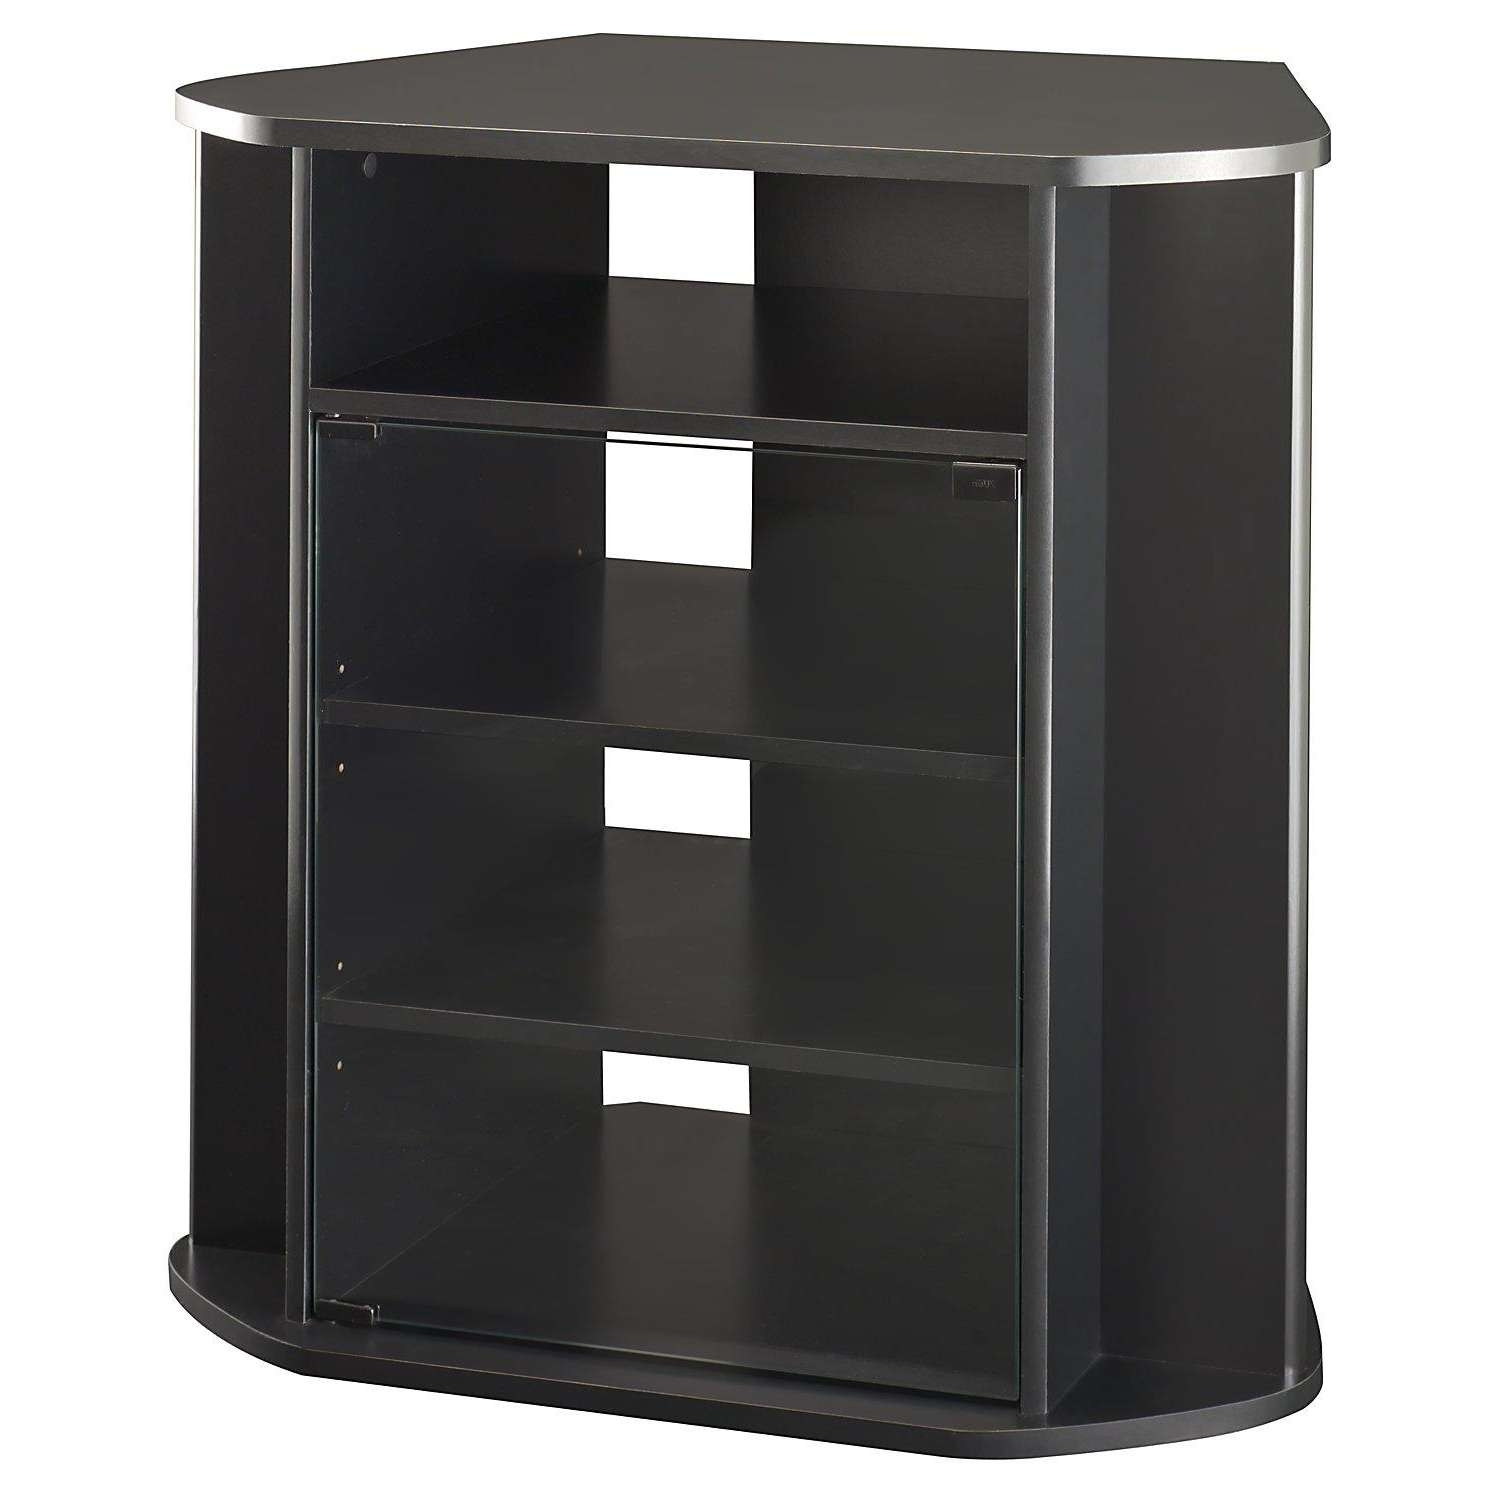 Tall Corner Tv Stand With Glass Door Cabinet In Black Color Regarding Corner Tv Cabinets With Glass Doors (View 13 of 20)